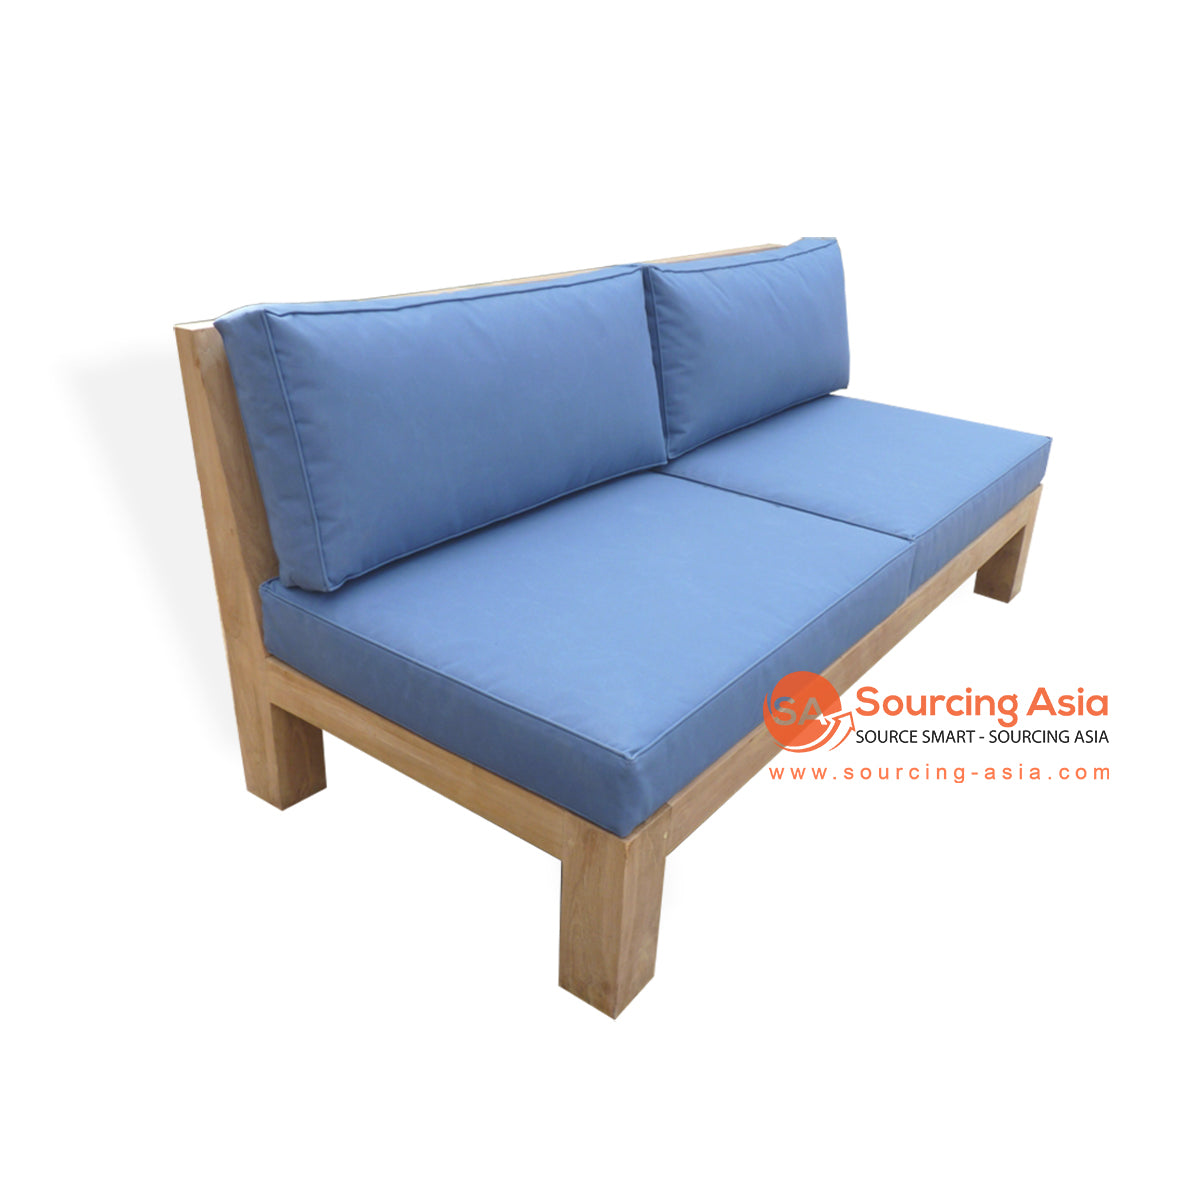 ECL048-240X75 RECYCLED TEAK WOOD SOFA WITH 2 SEATS